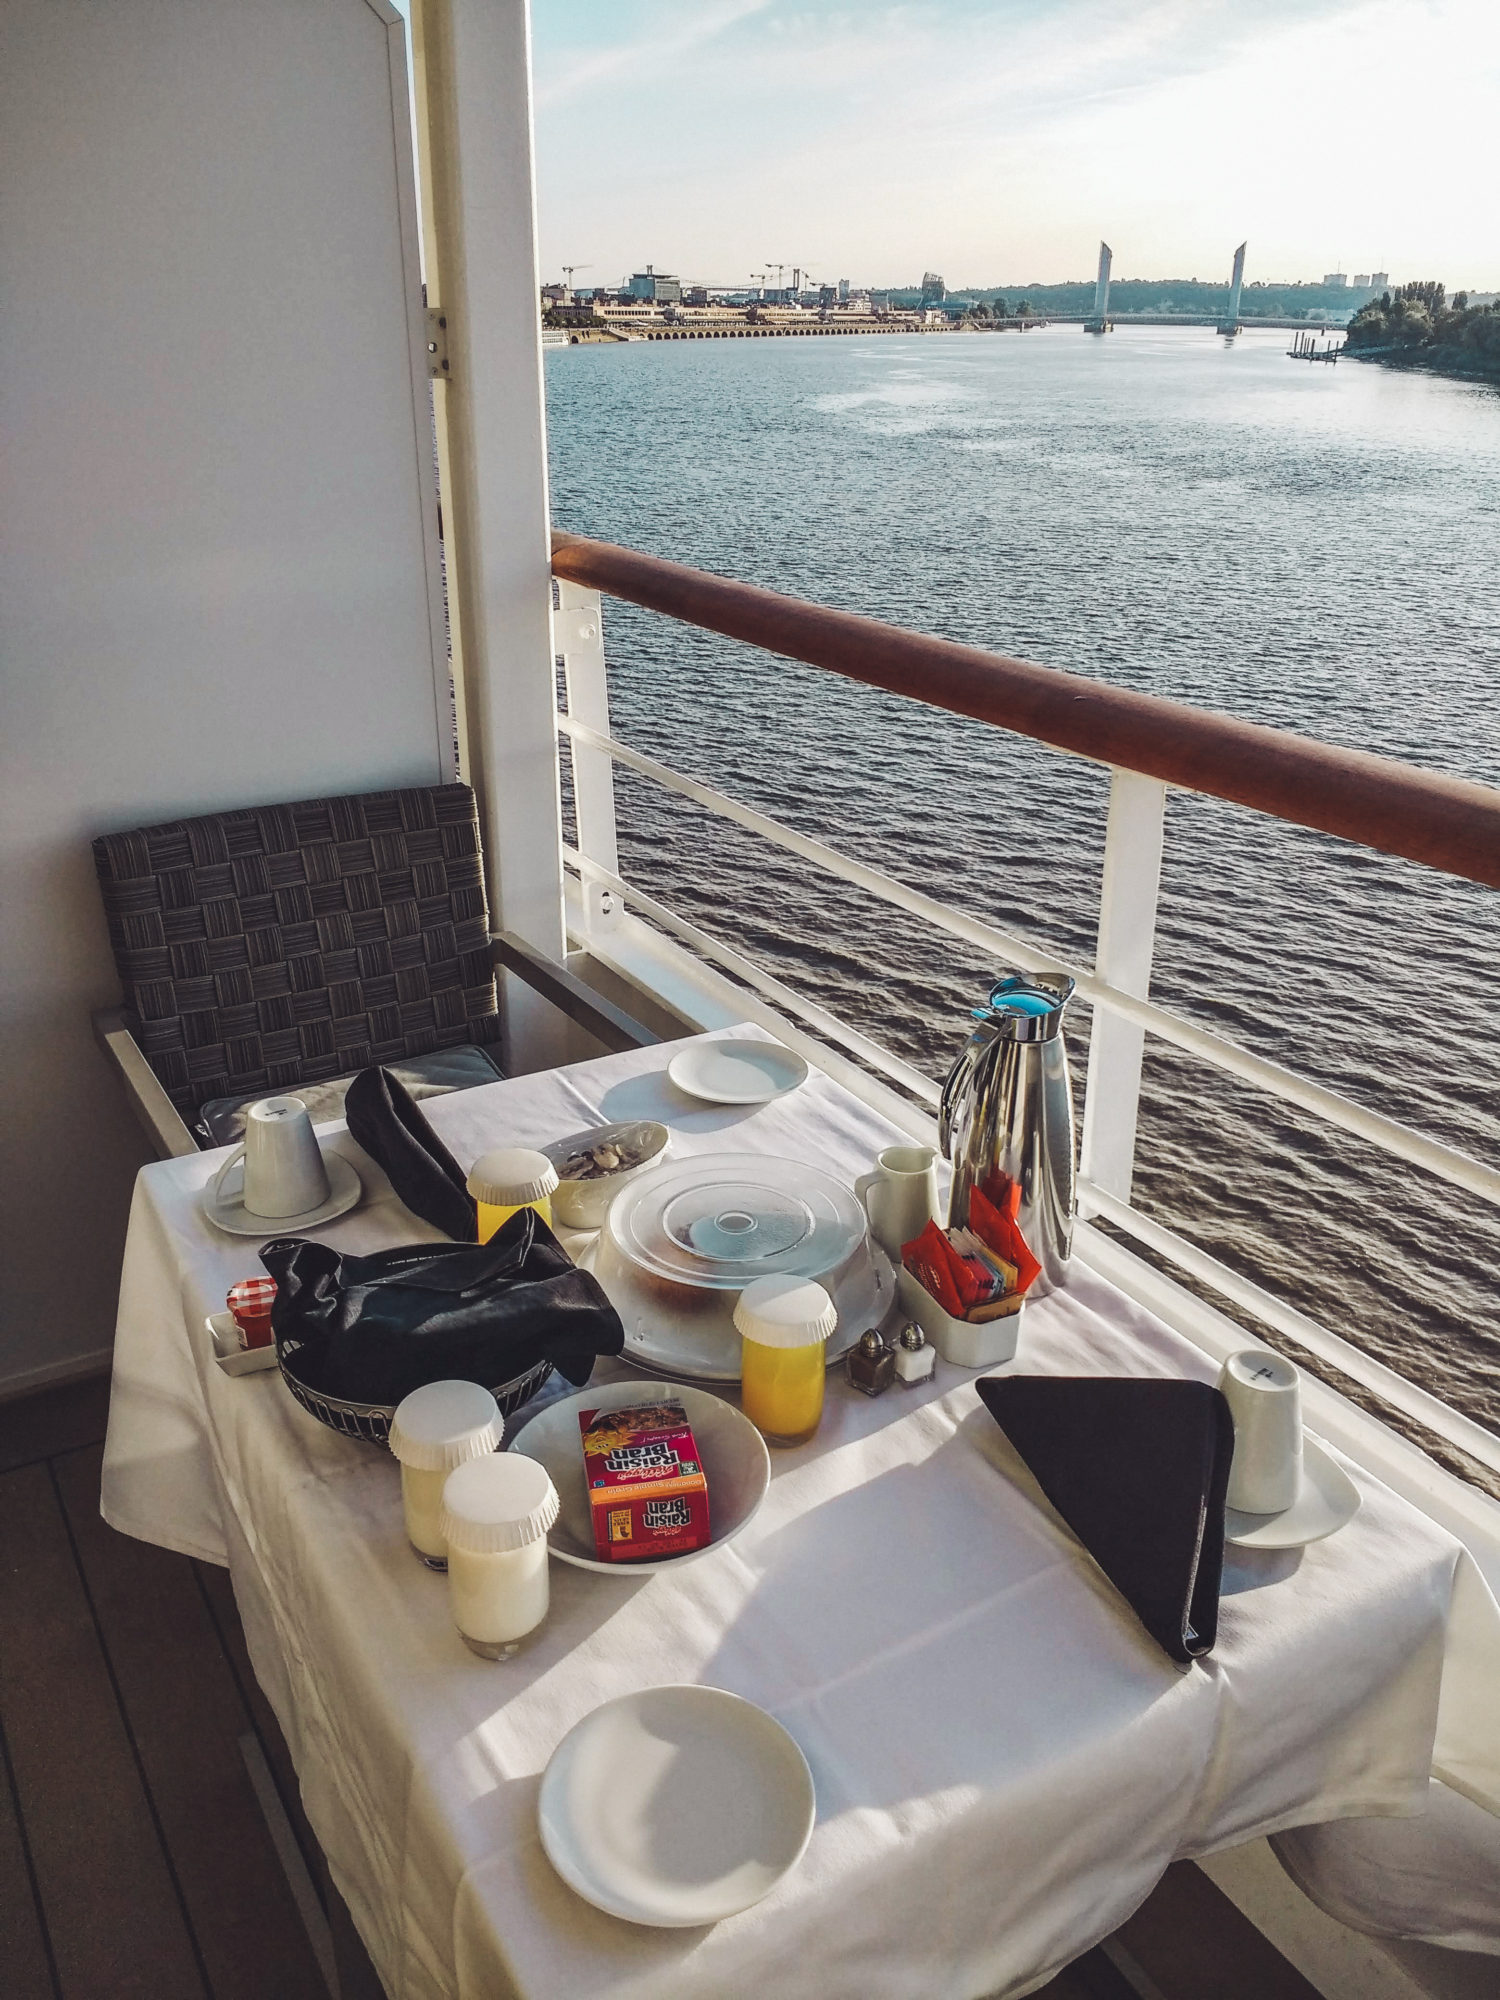 Azamara Pursuit - breakfast on the balcony